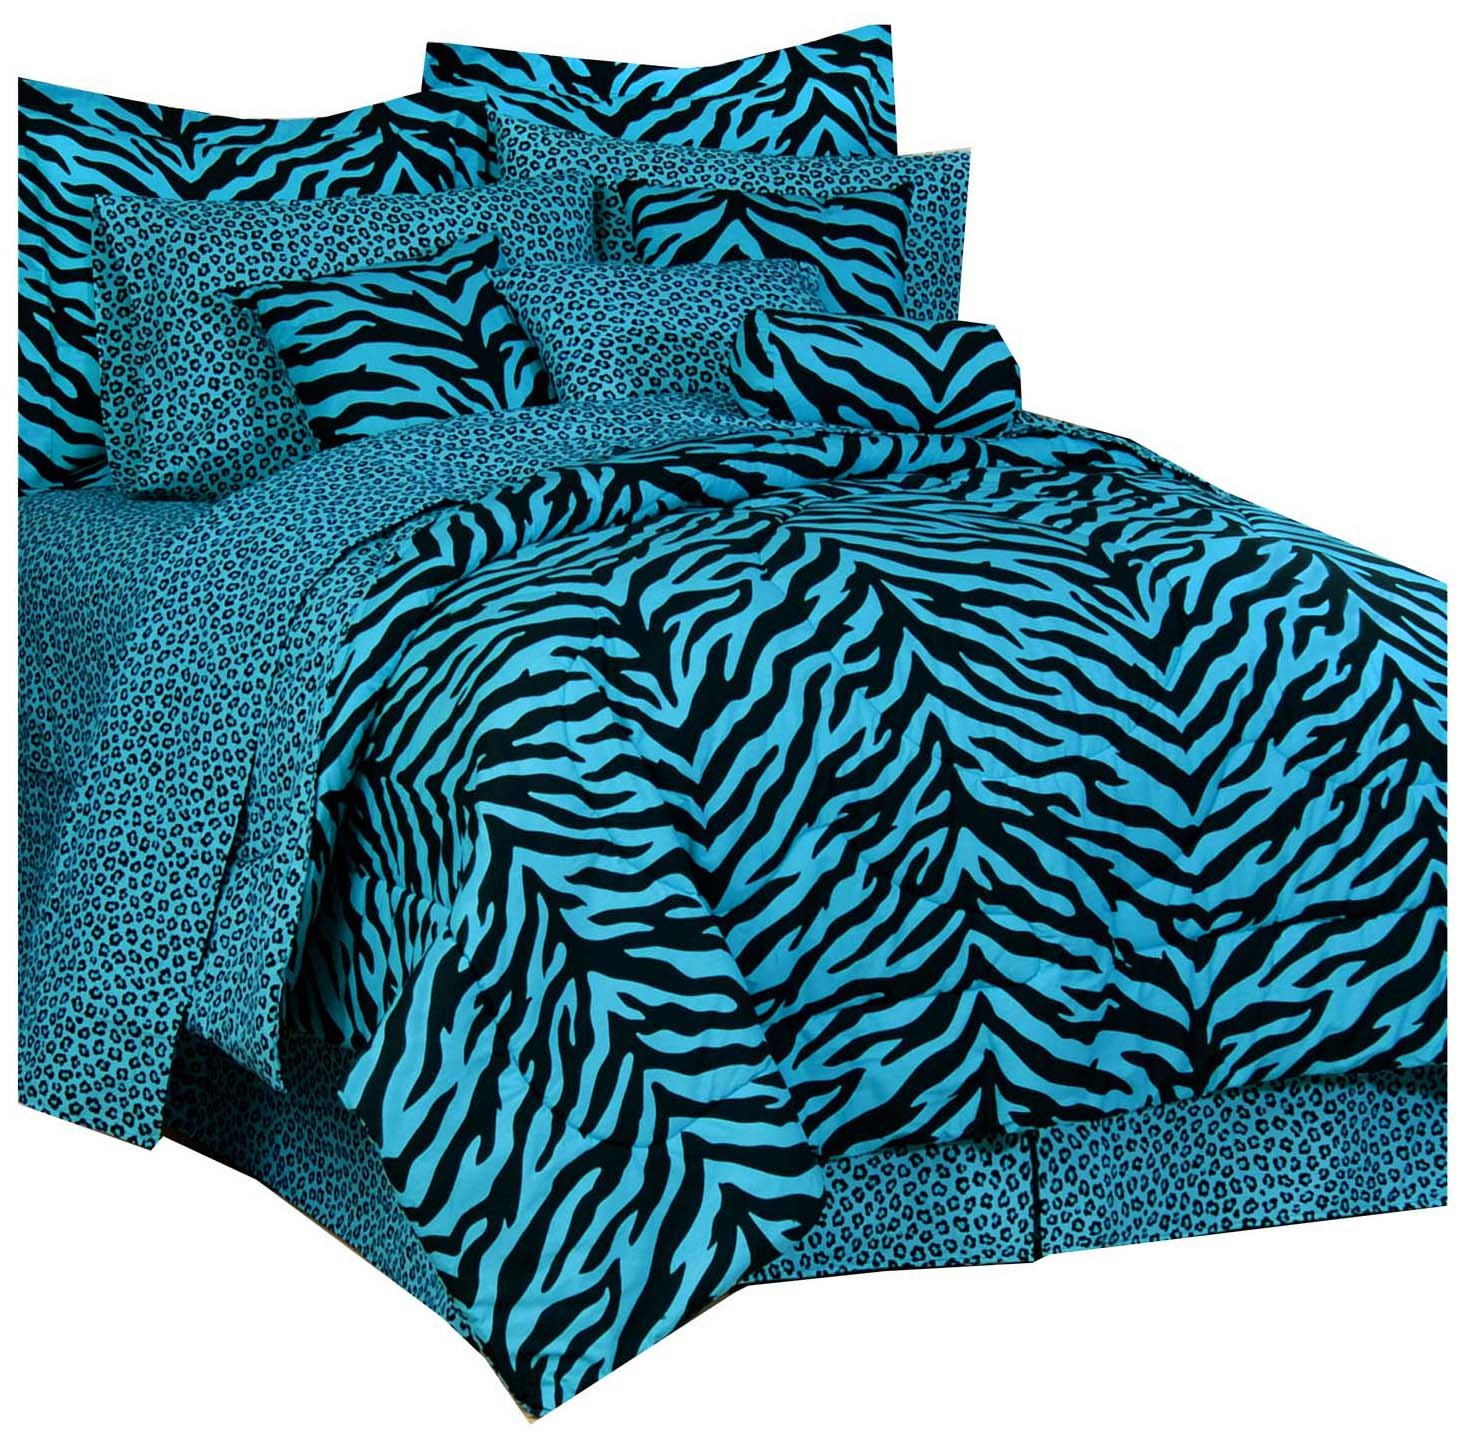 Cheap zebra print bedroom sets - Amazon Com Karin Maki Zebra Complete Bedding Set Full Lime Home Kitchen